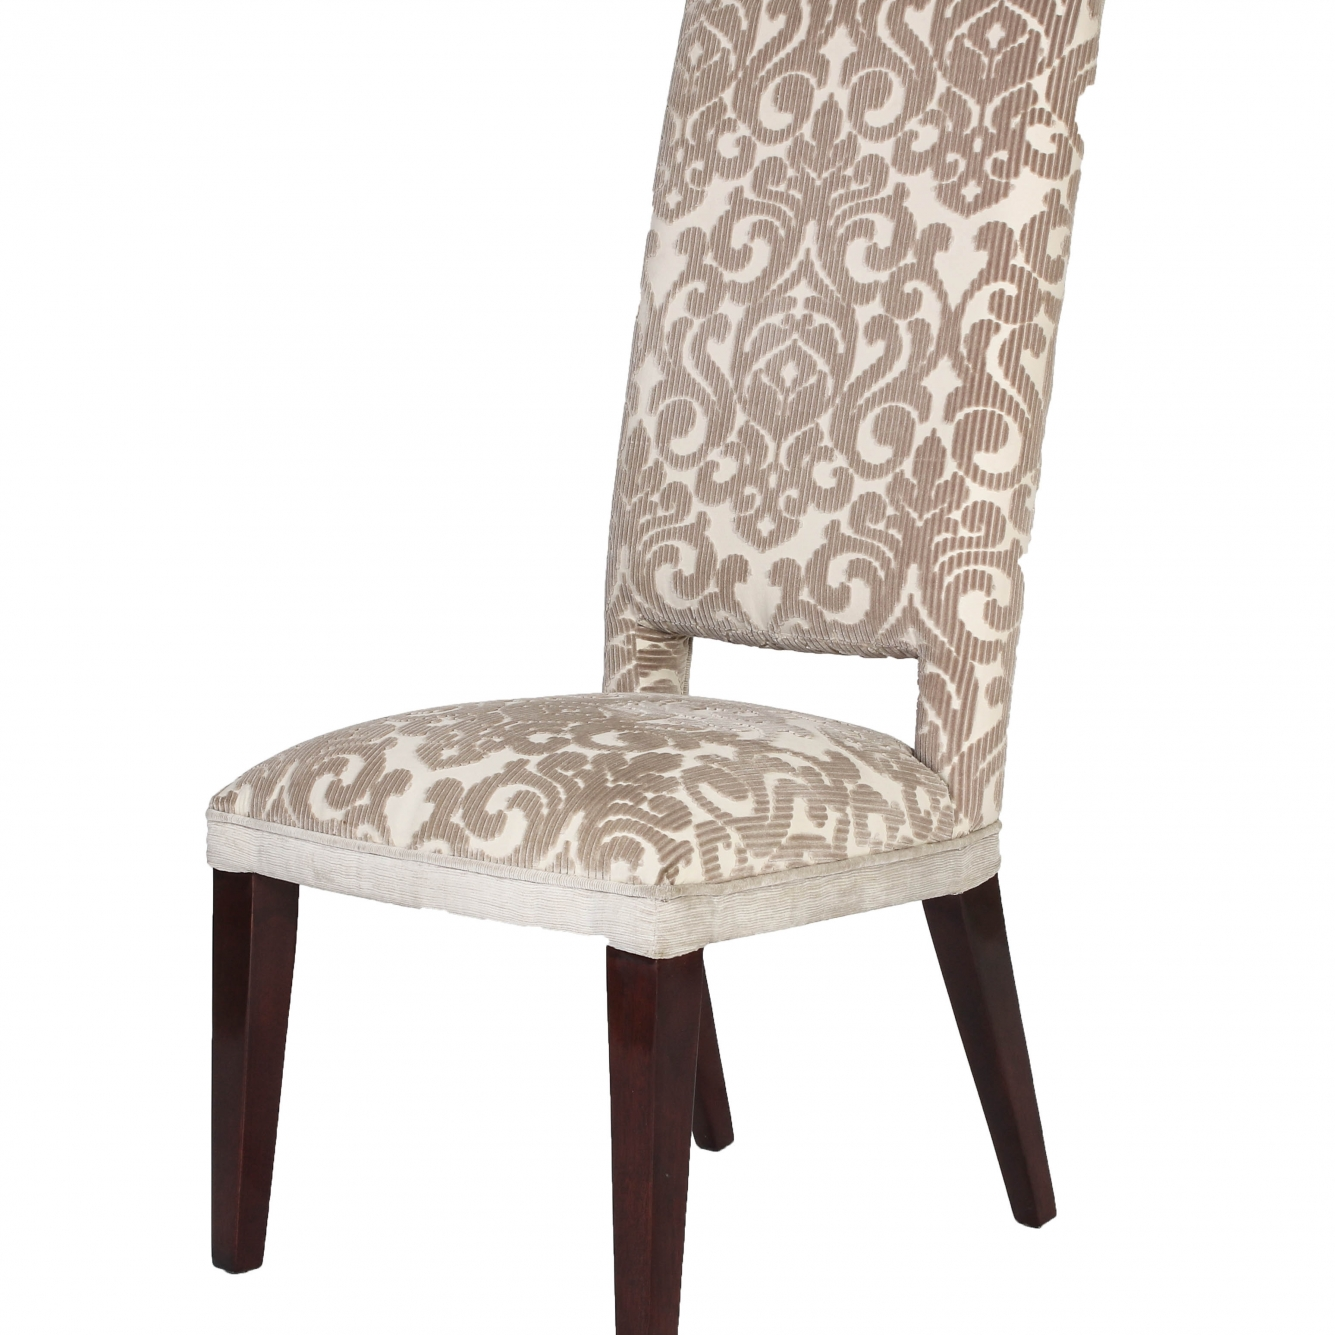 HOUSE HAVEN FURNITURE 29